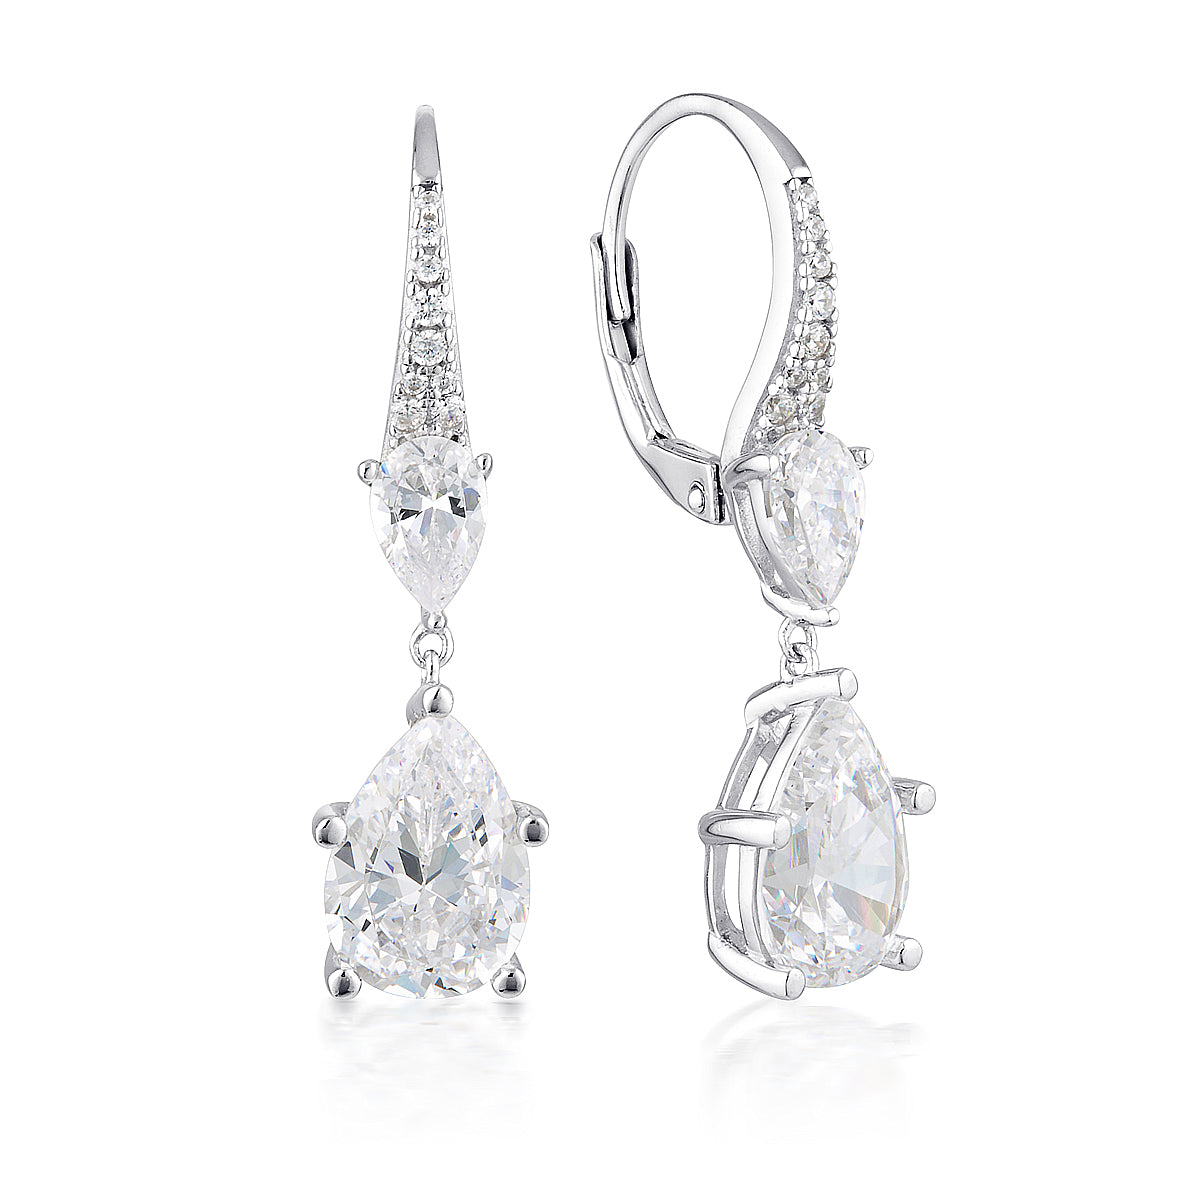 GEORGINI SS CZ Josephine Earrings